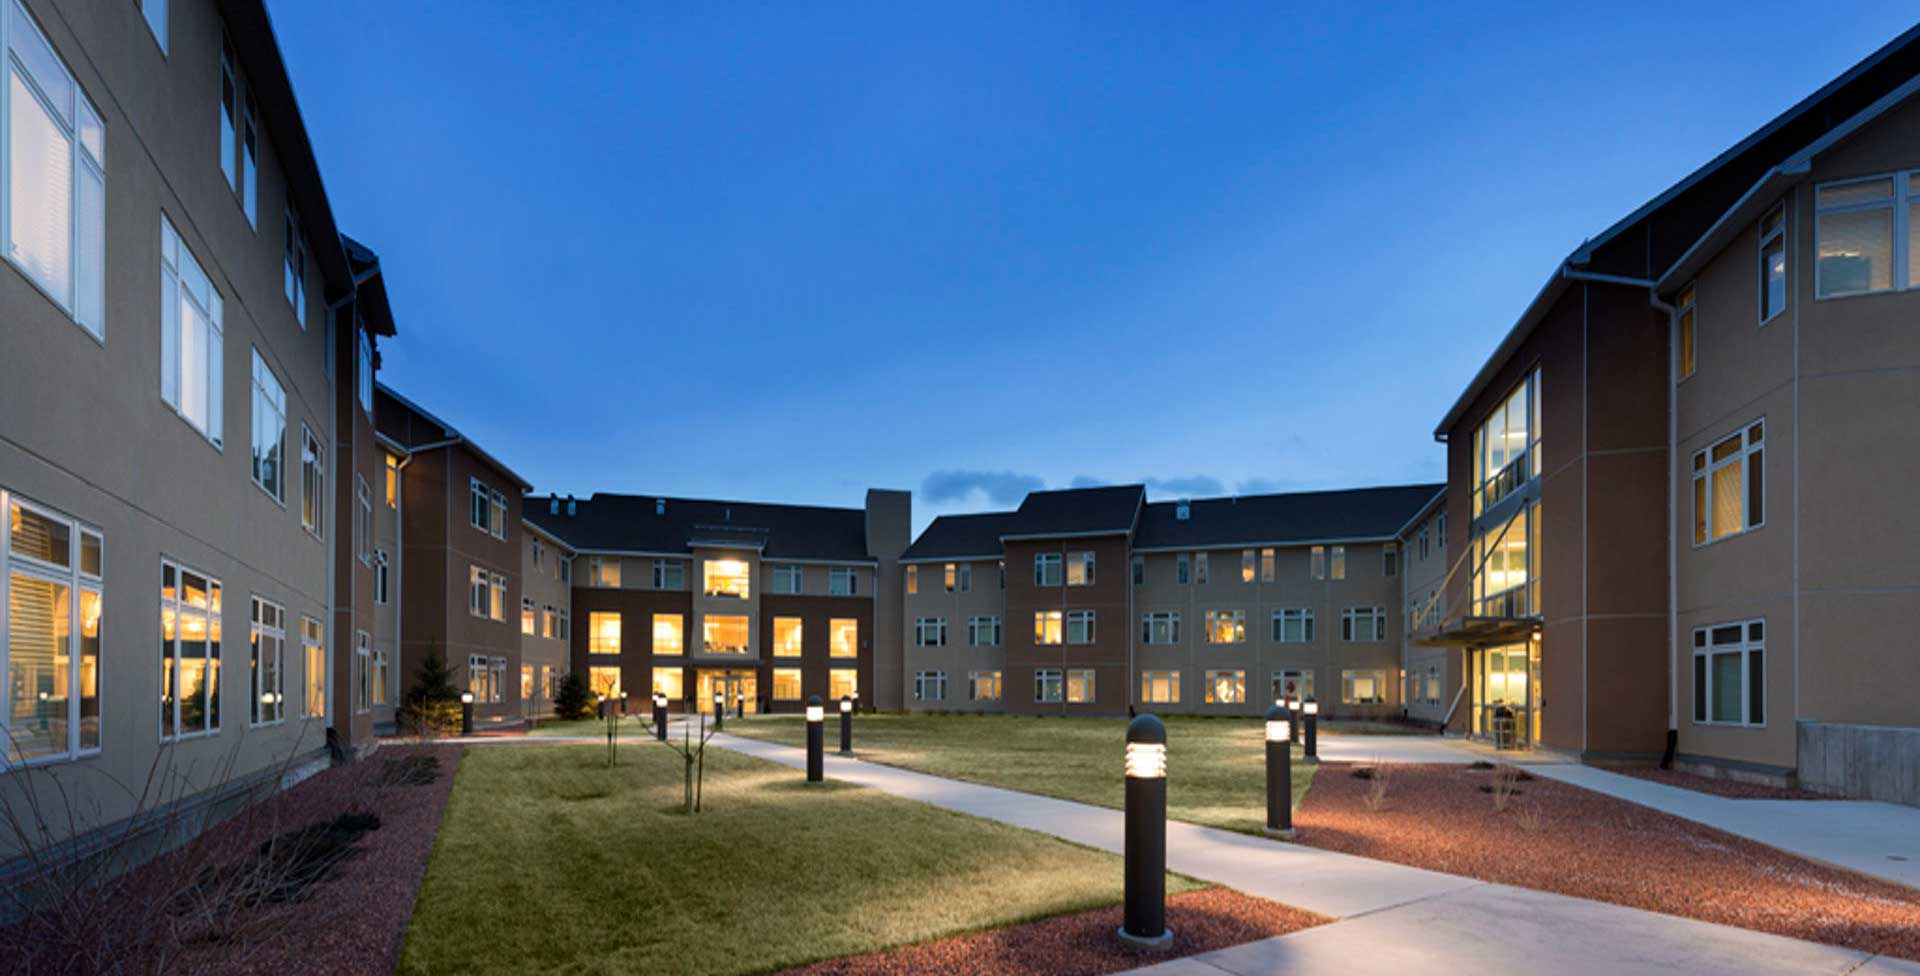 Resident Halls in the evening